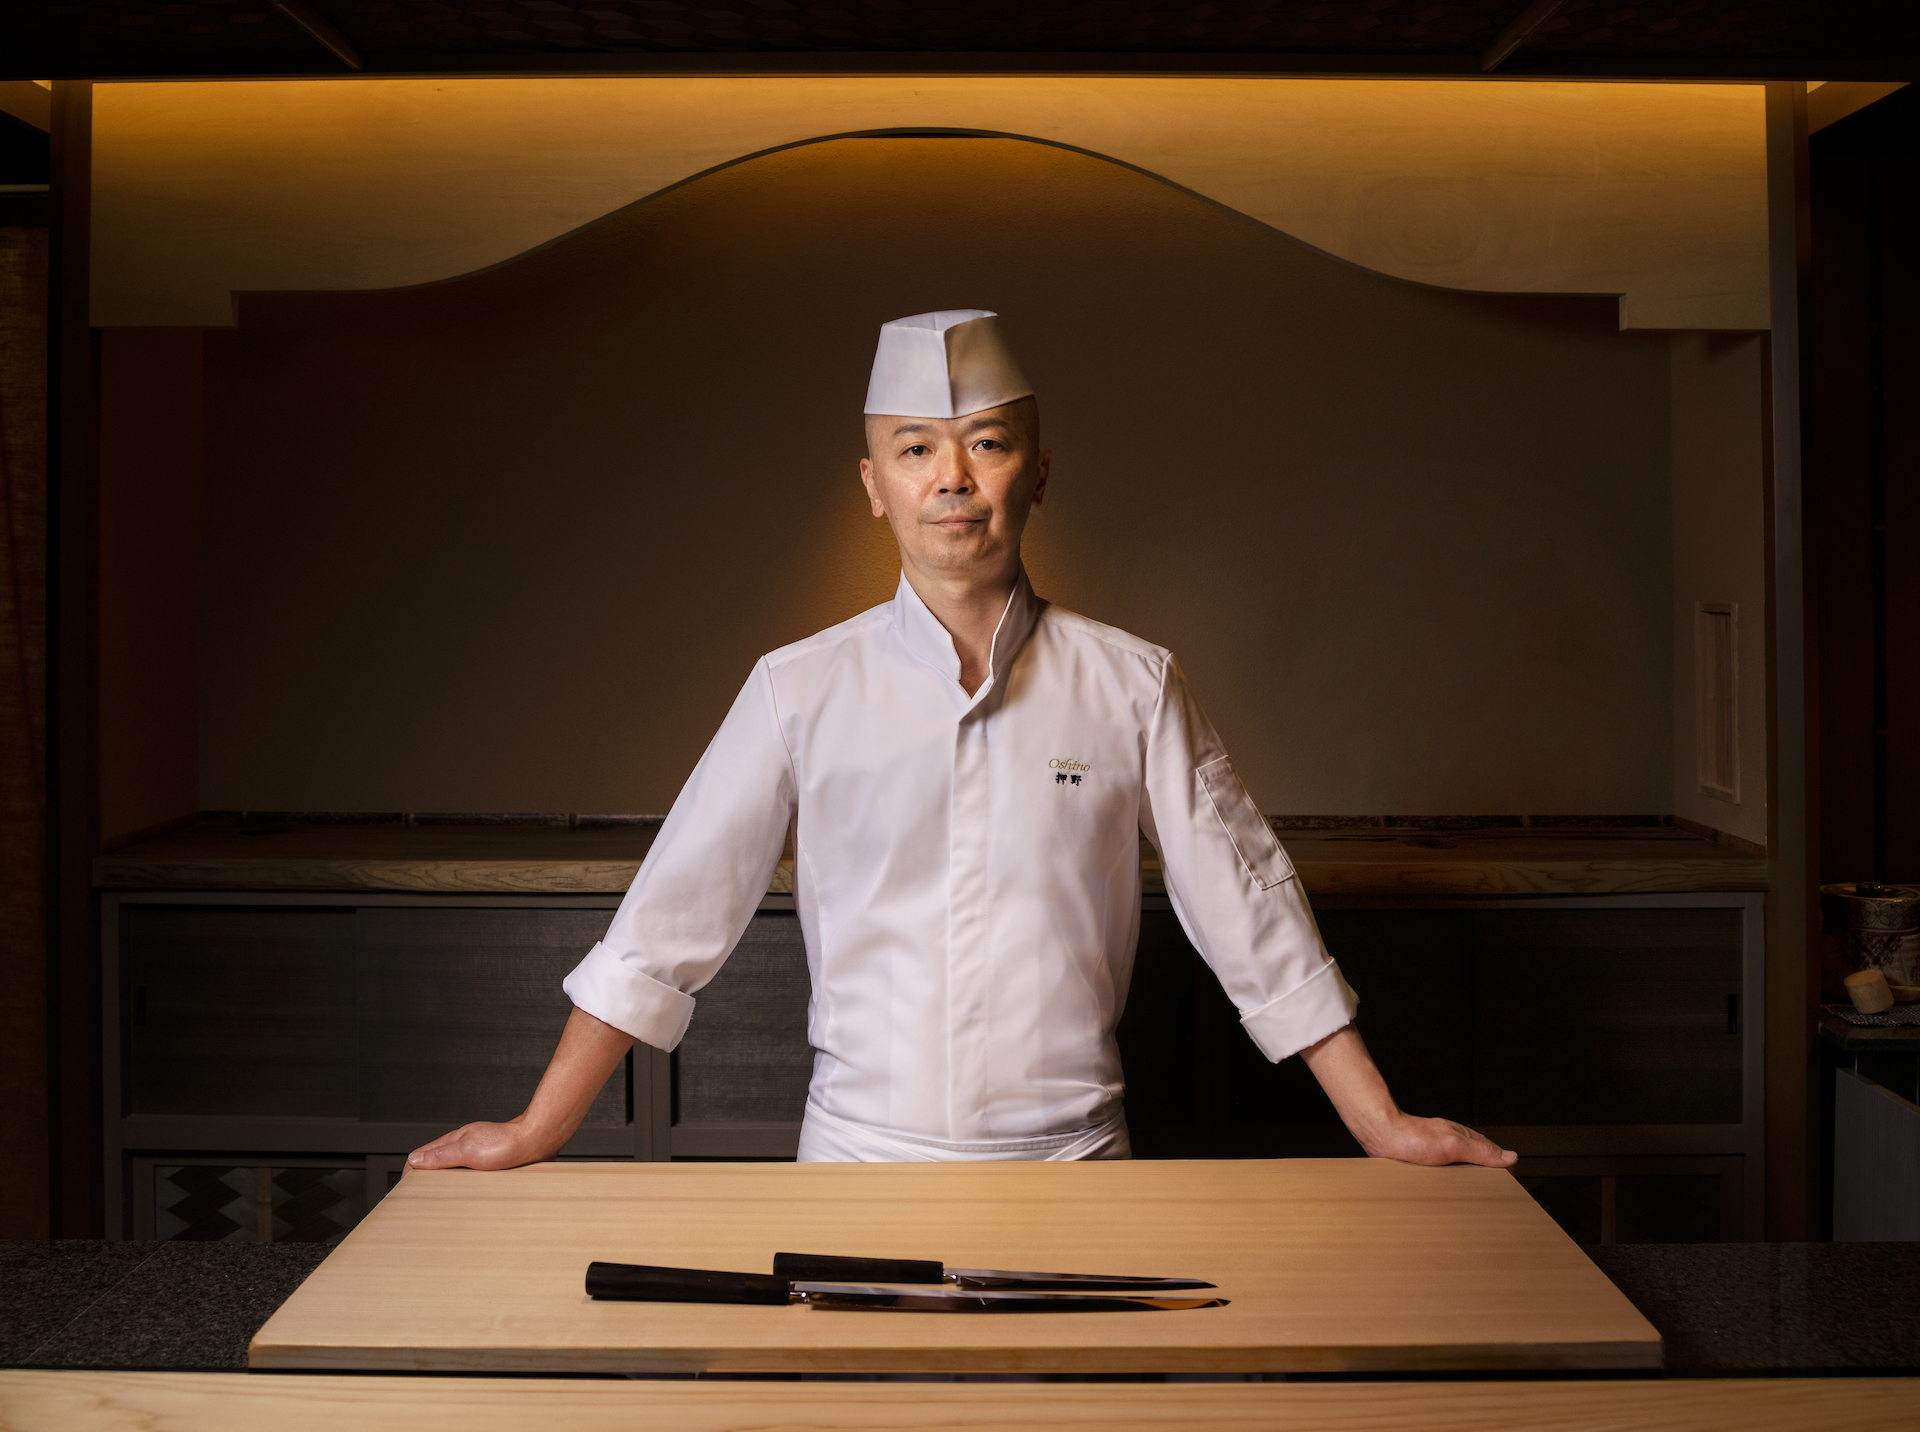 oshino_singapore_chef